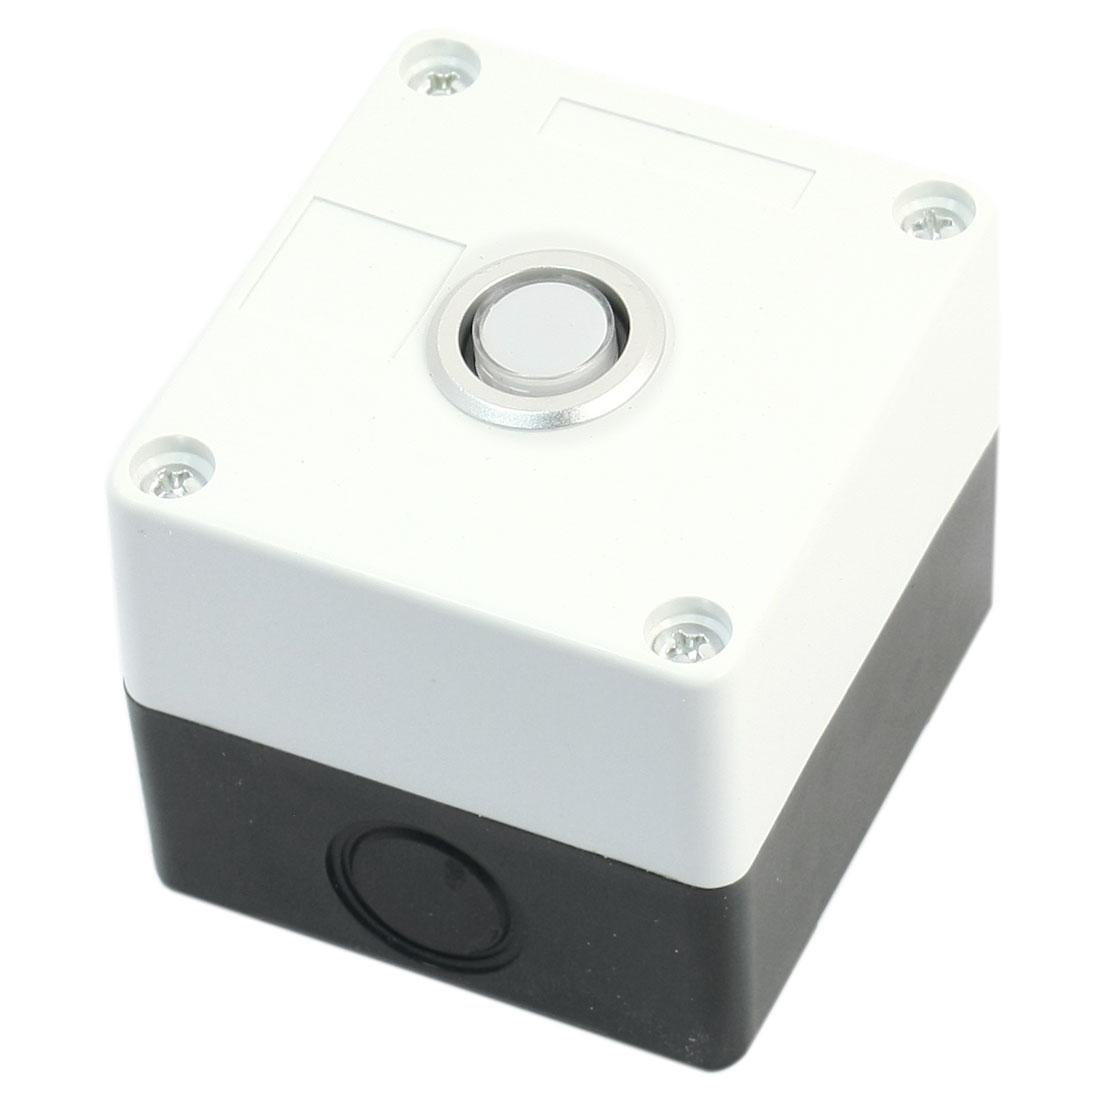 12V Warm White Light SPDT 1NO 1NC 5-Pin 1NO 1NC Momentary Reset Rectangle Plastic Push Button Station Box